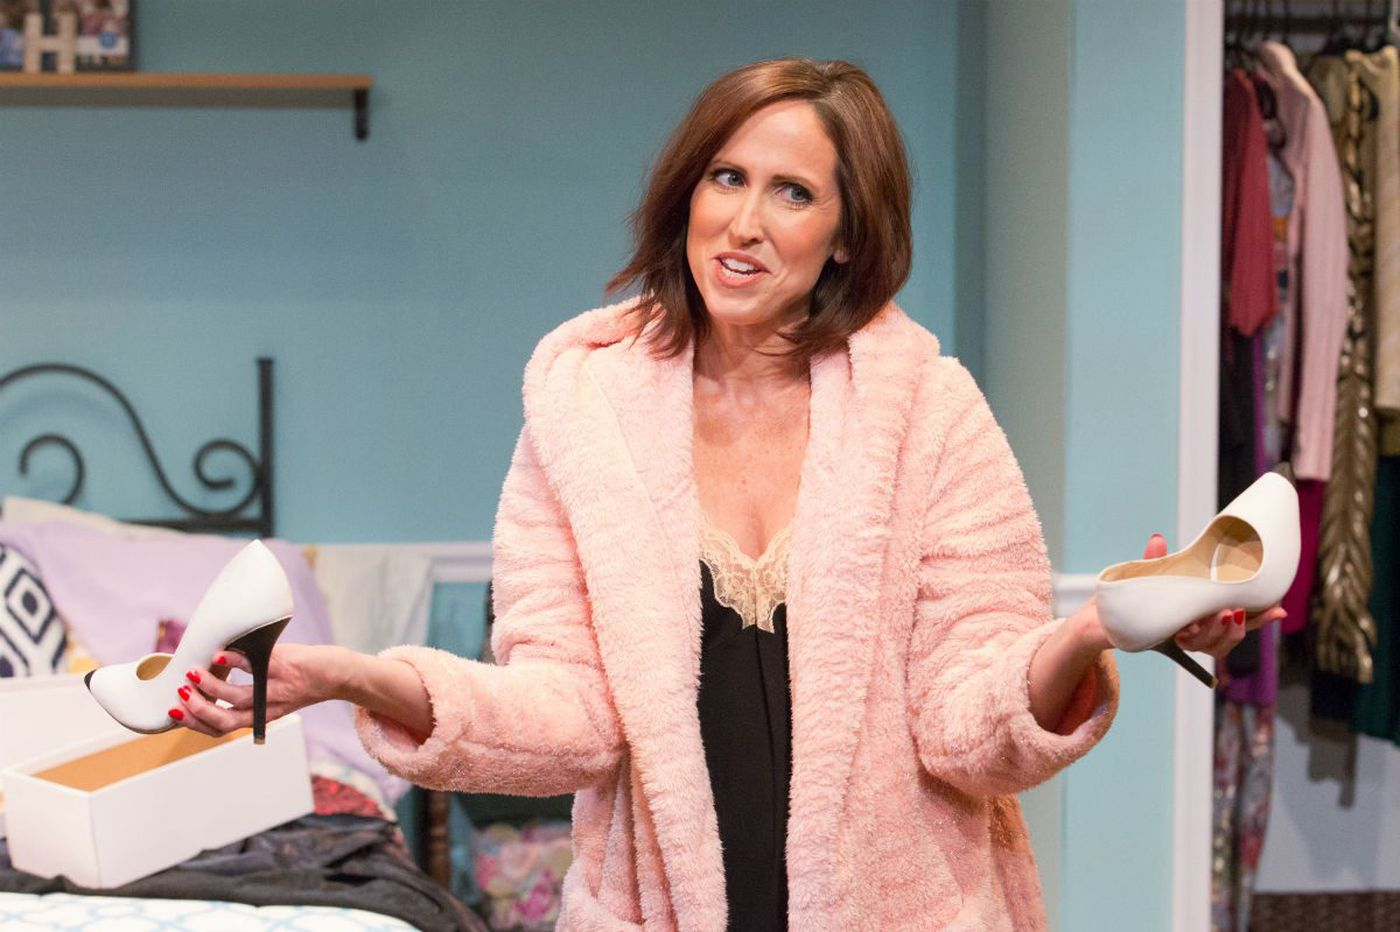 'Bad Dates' at Act II Playhouse: A little behind the times, but the shoes are dazzling